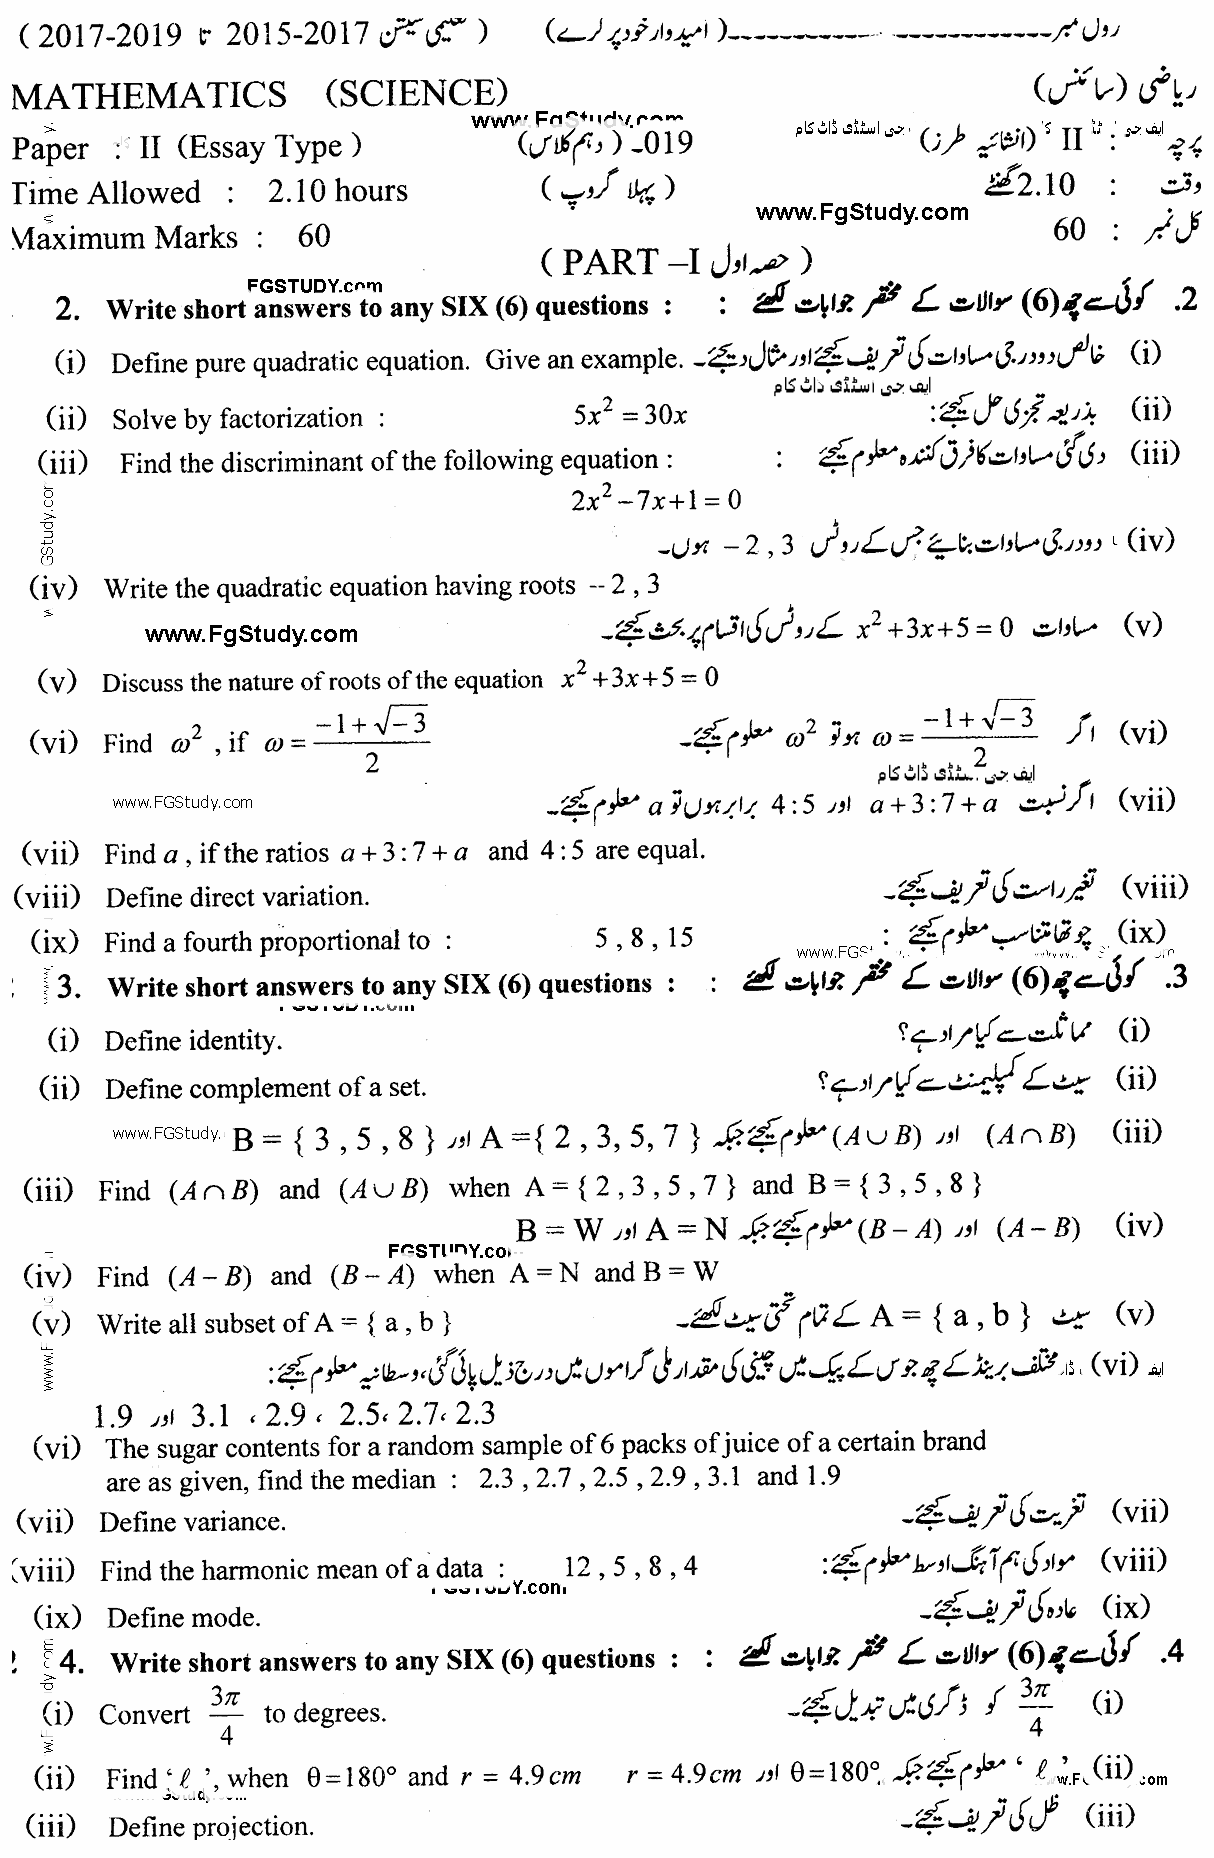 Mathematics Subjective Group 1 10th Class Past Papers 2019